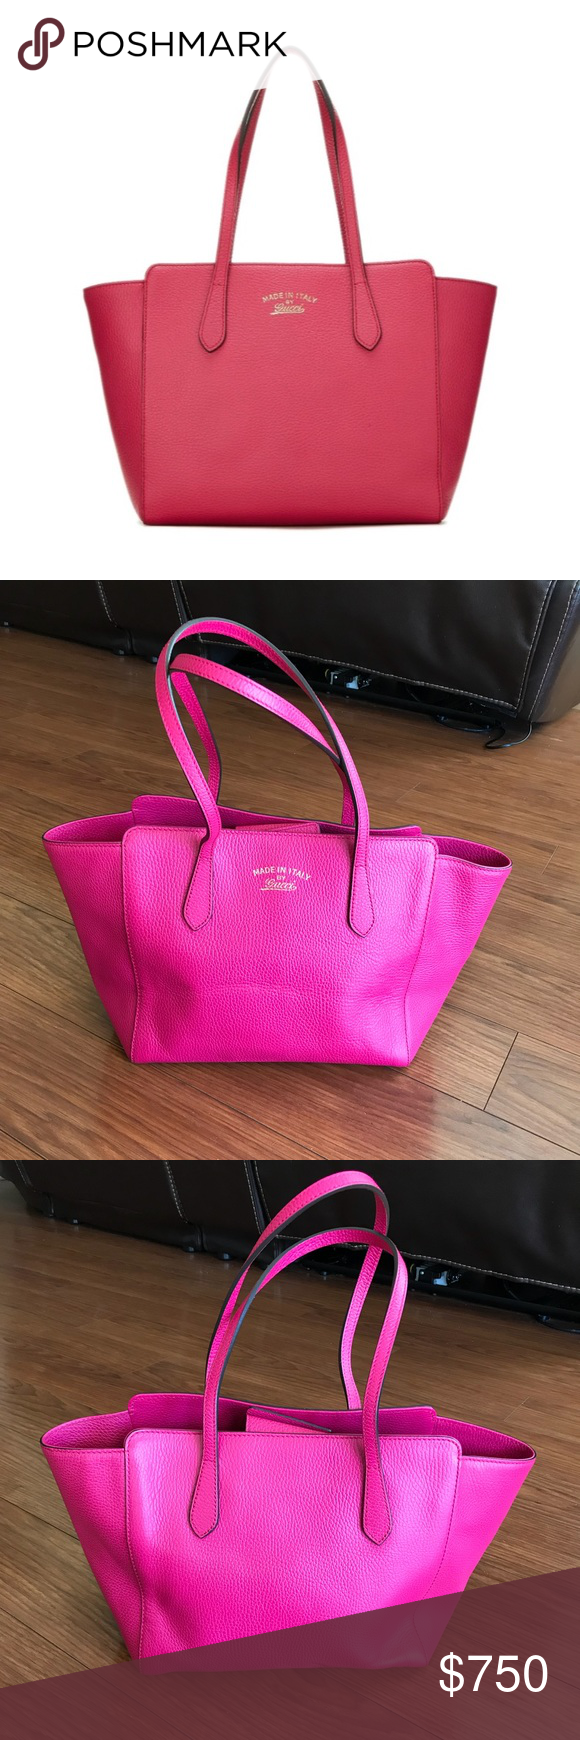 """be608955bbf3 PRICE DROPPED Gucci Leather """"Swing Tote"""" -100% Authentic, Free Posh  Authenticate"""